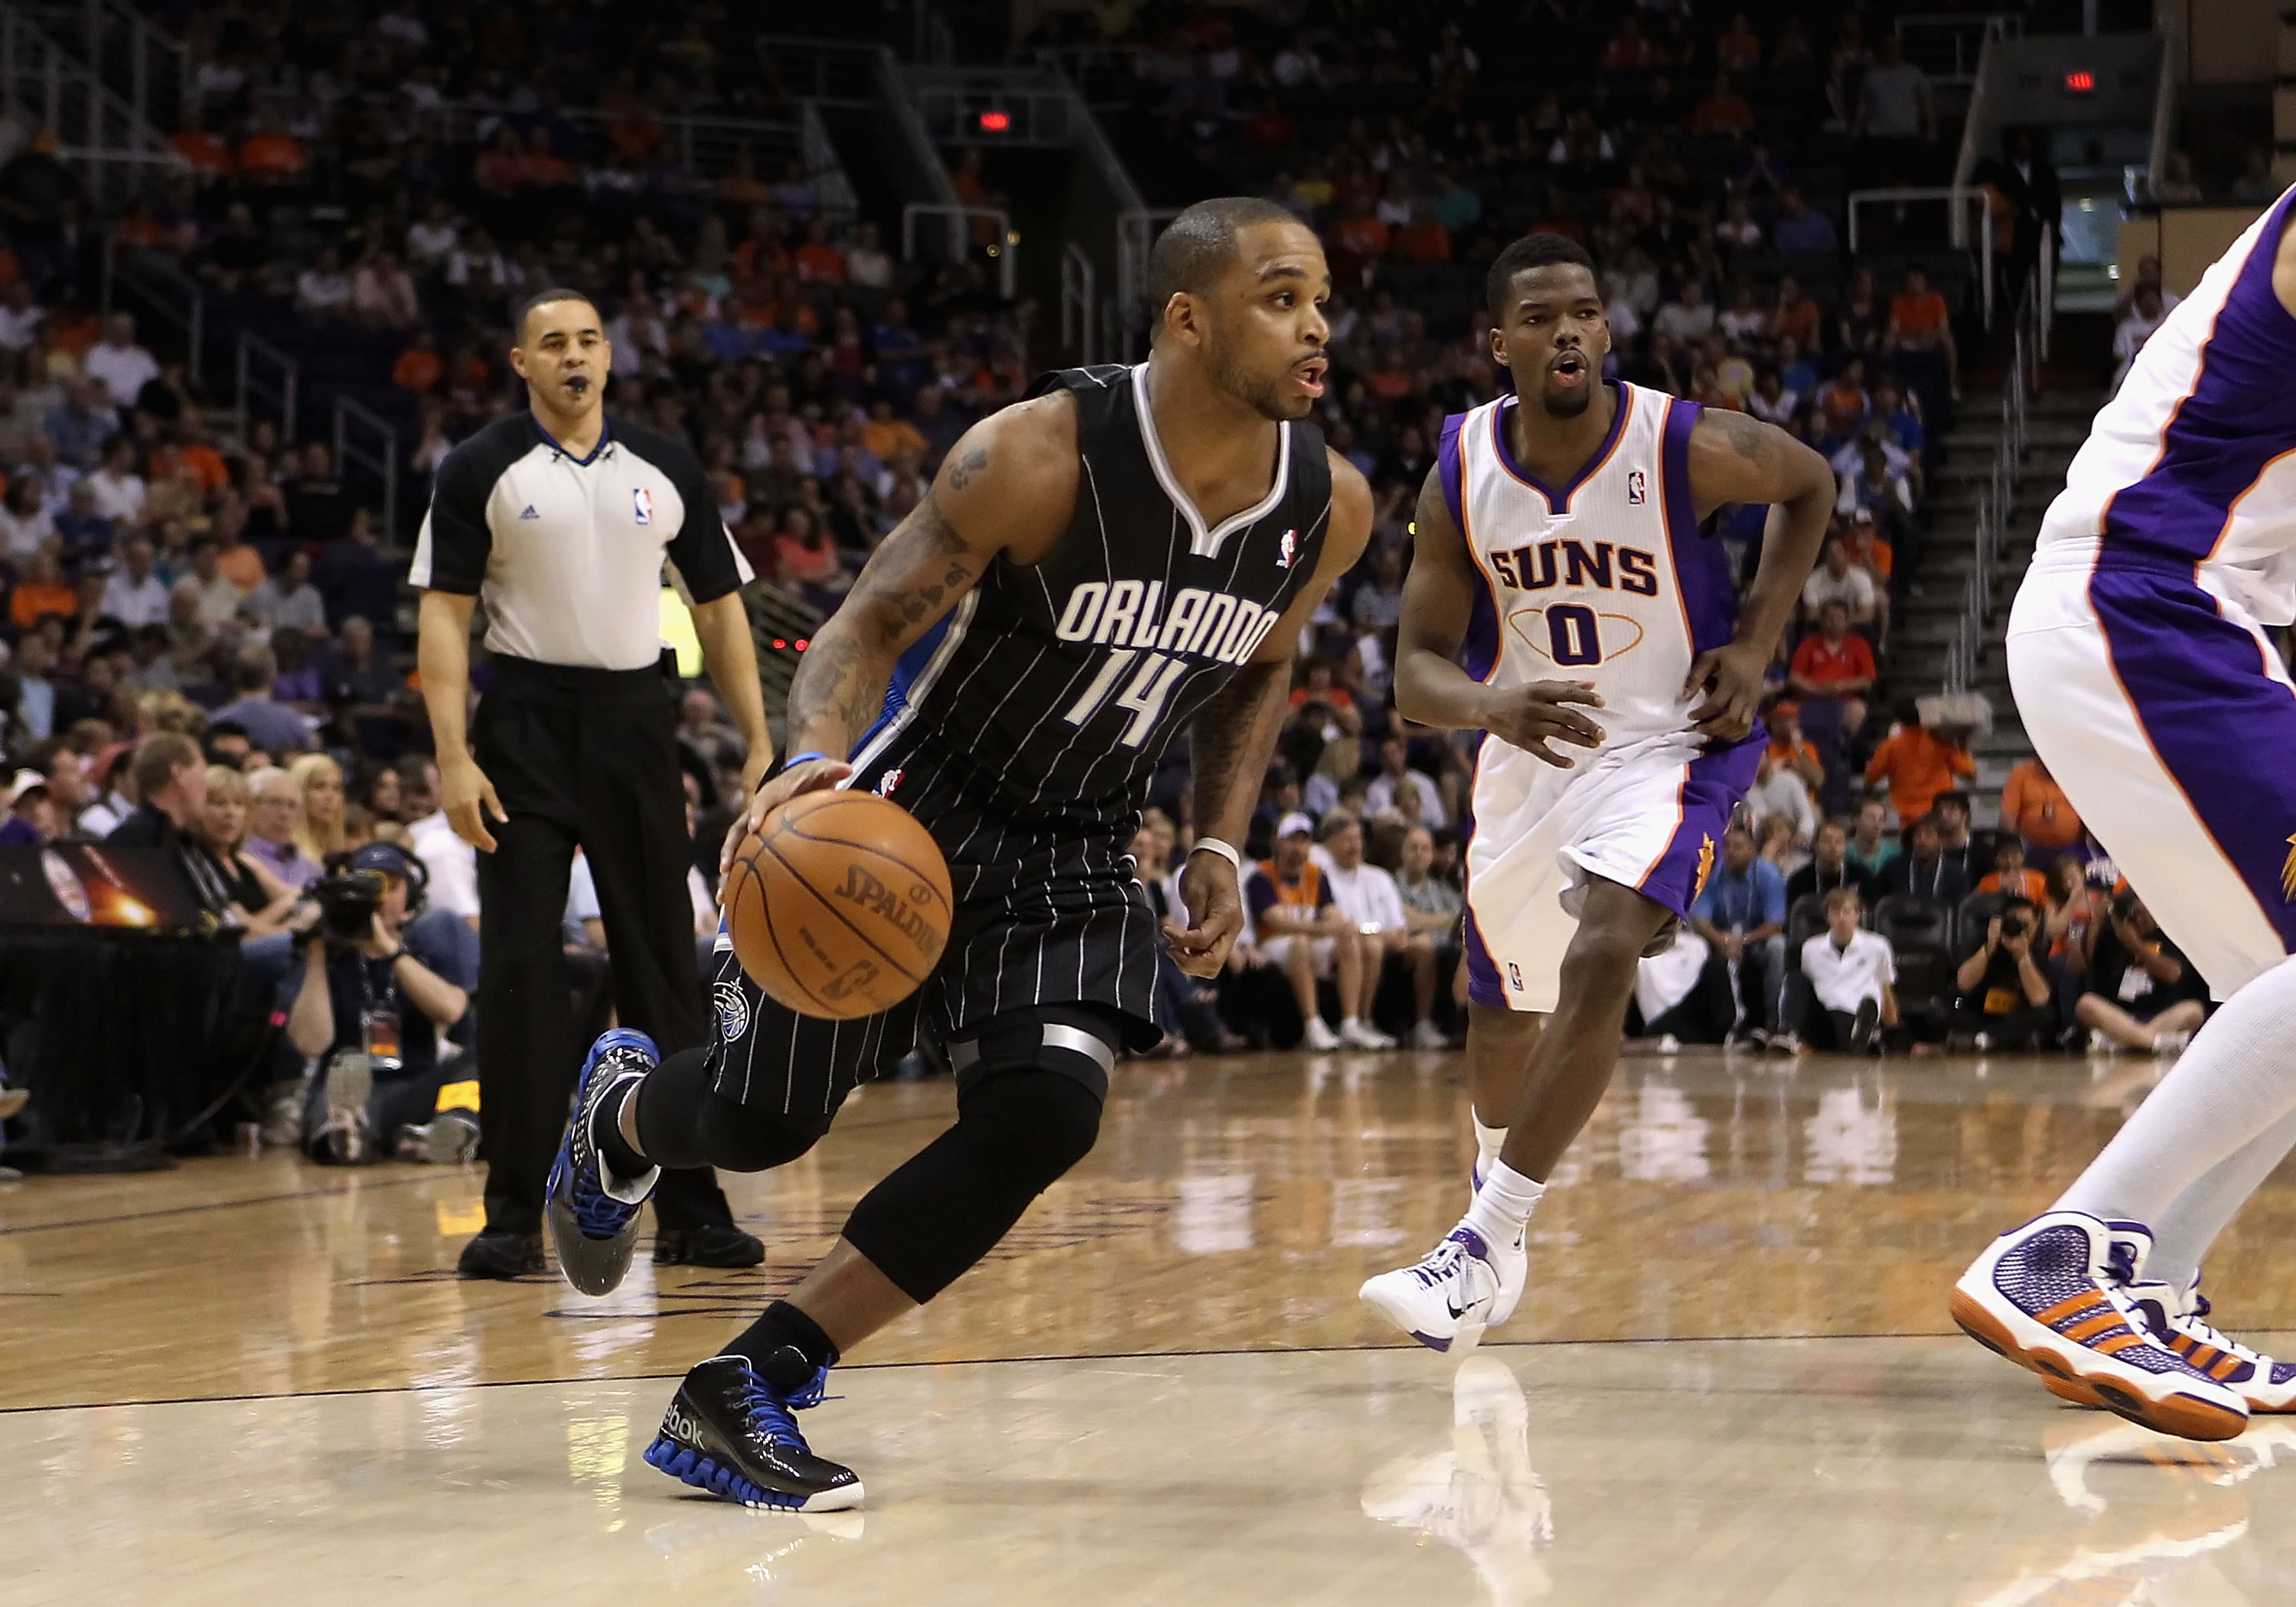 PHOENIX, AZ - MARCH 13:  Jameer Nelson #14 of the Orlando Magic handles the ball during the NBA game against the Phoenix Suns at US Airways Center on March 13, 2011 in Phoenix, Arizona. The Magic defeated the Suns 111-88. NOTE TO USER: User expressly ackn